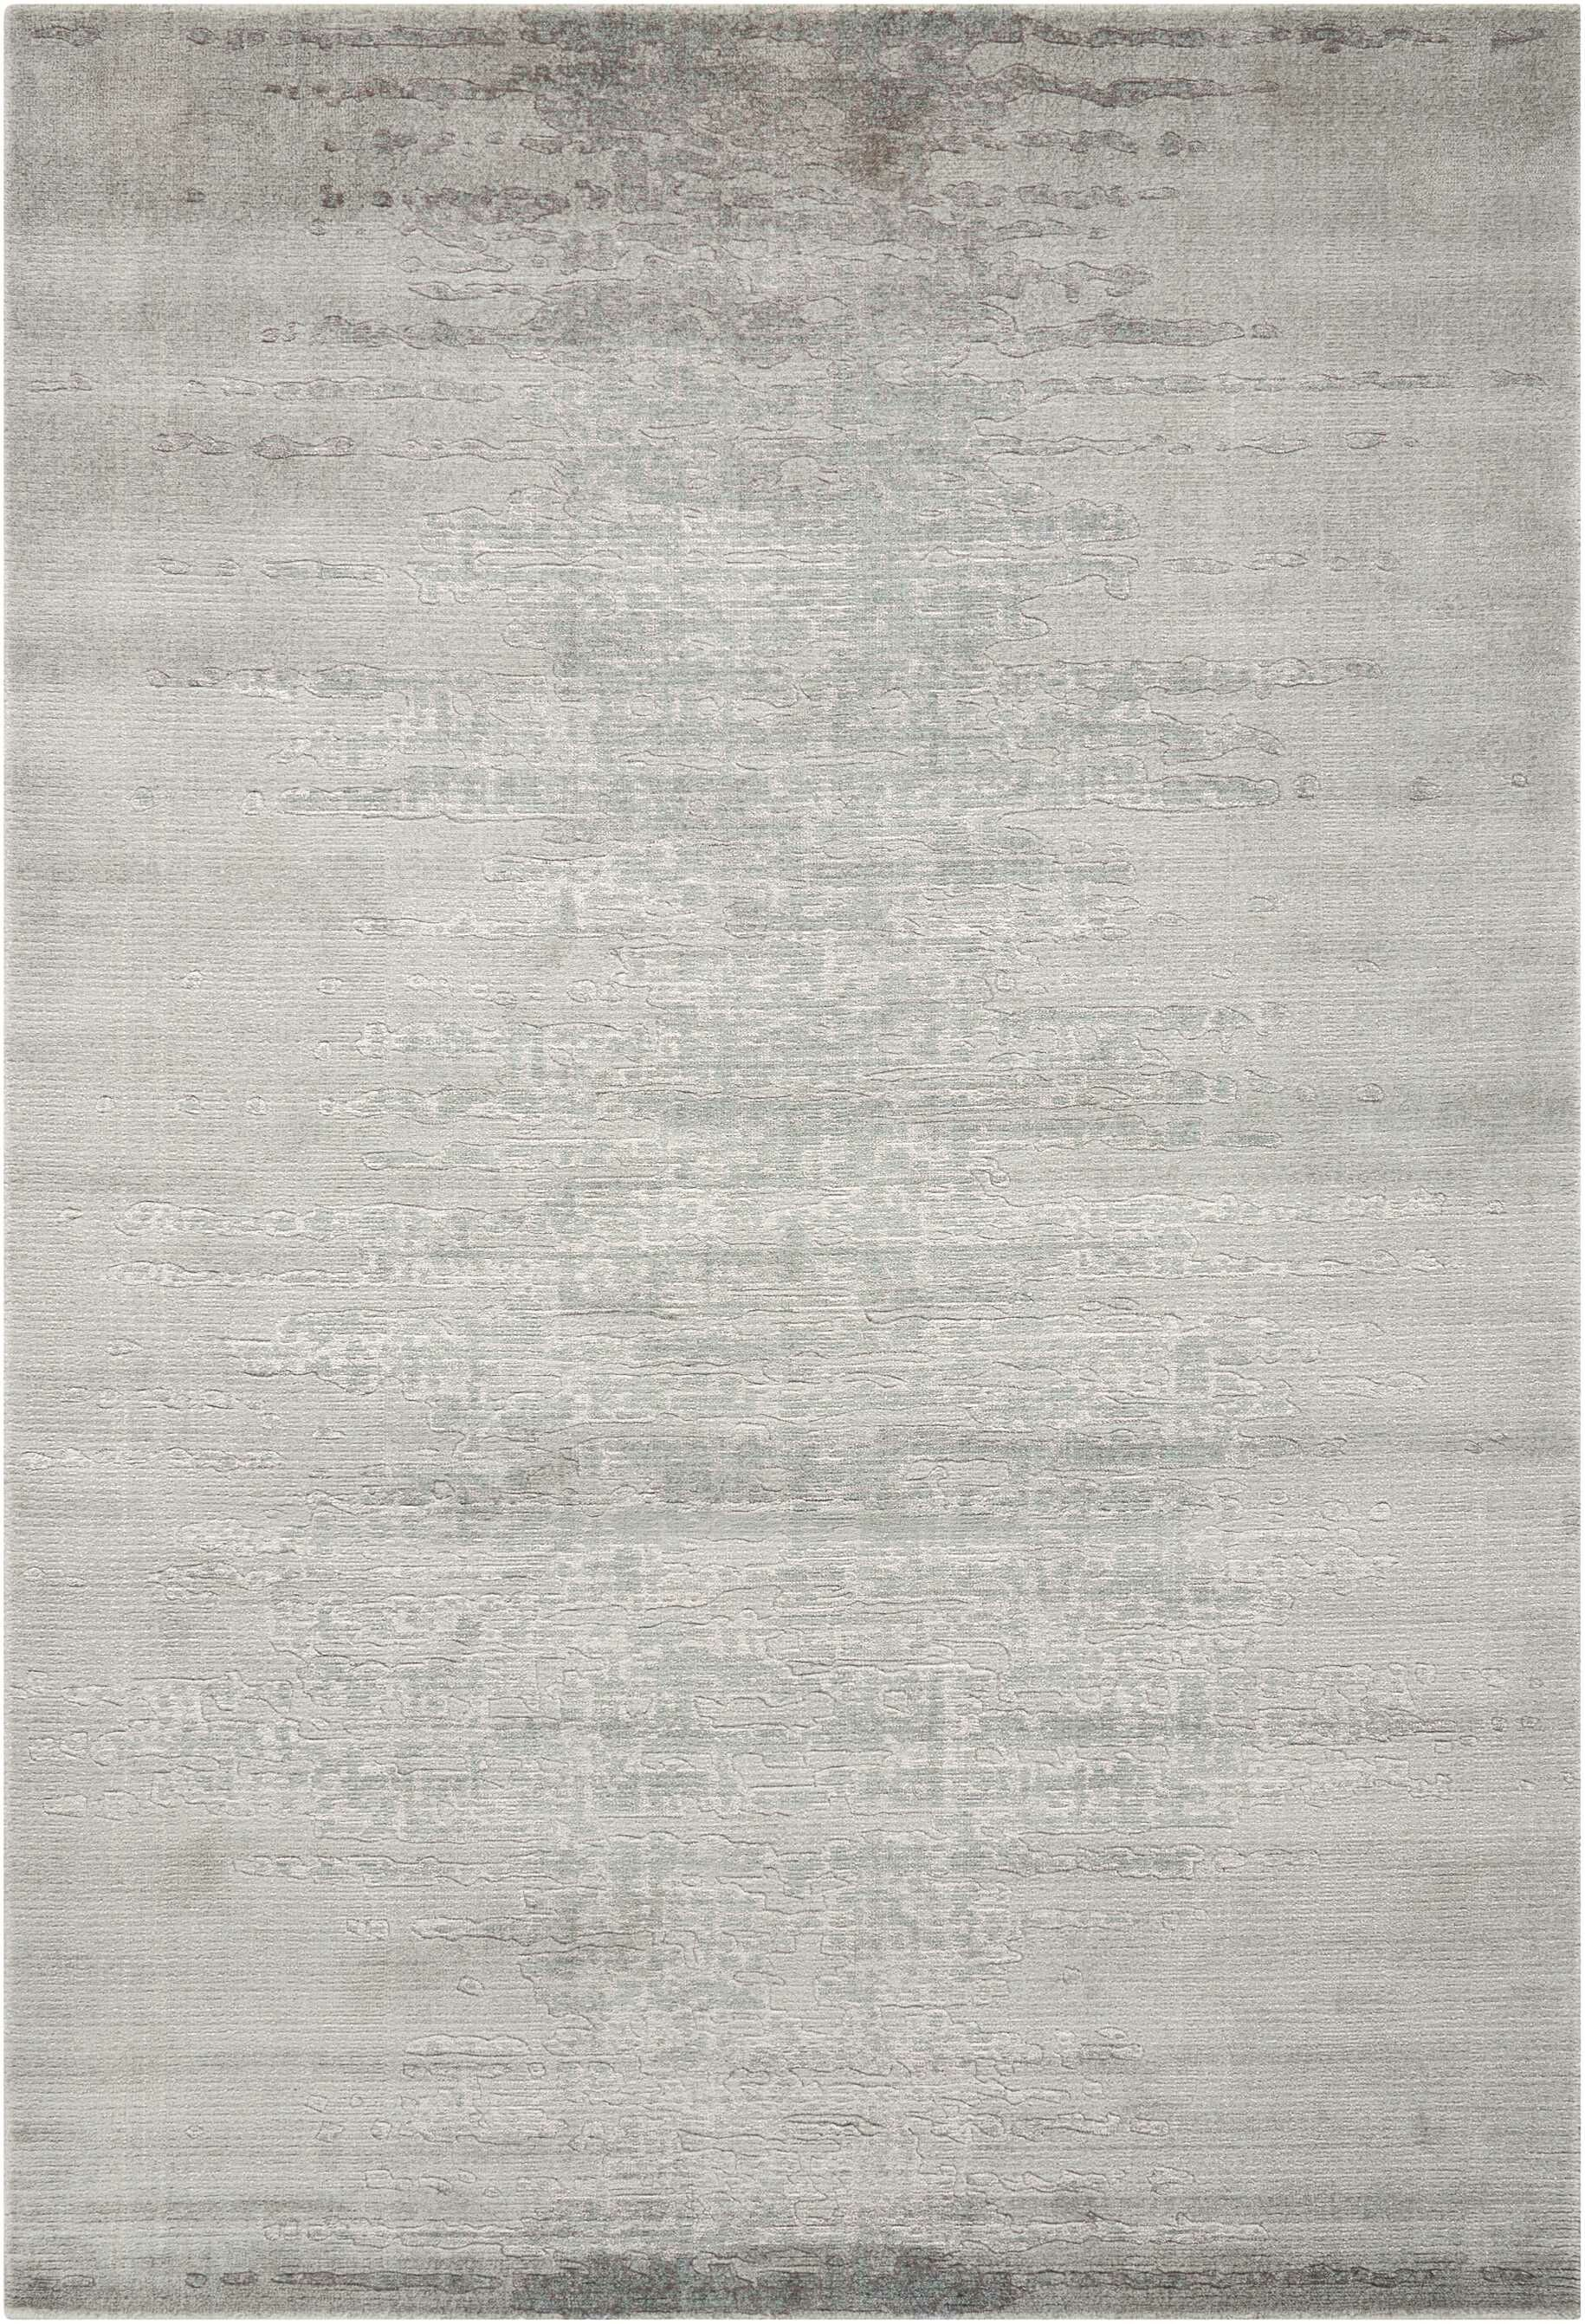 Arabelle Gray Area Rug Rug Size: Rectangle 2'3